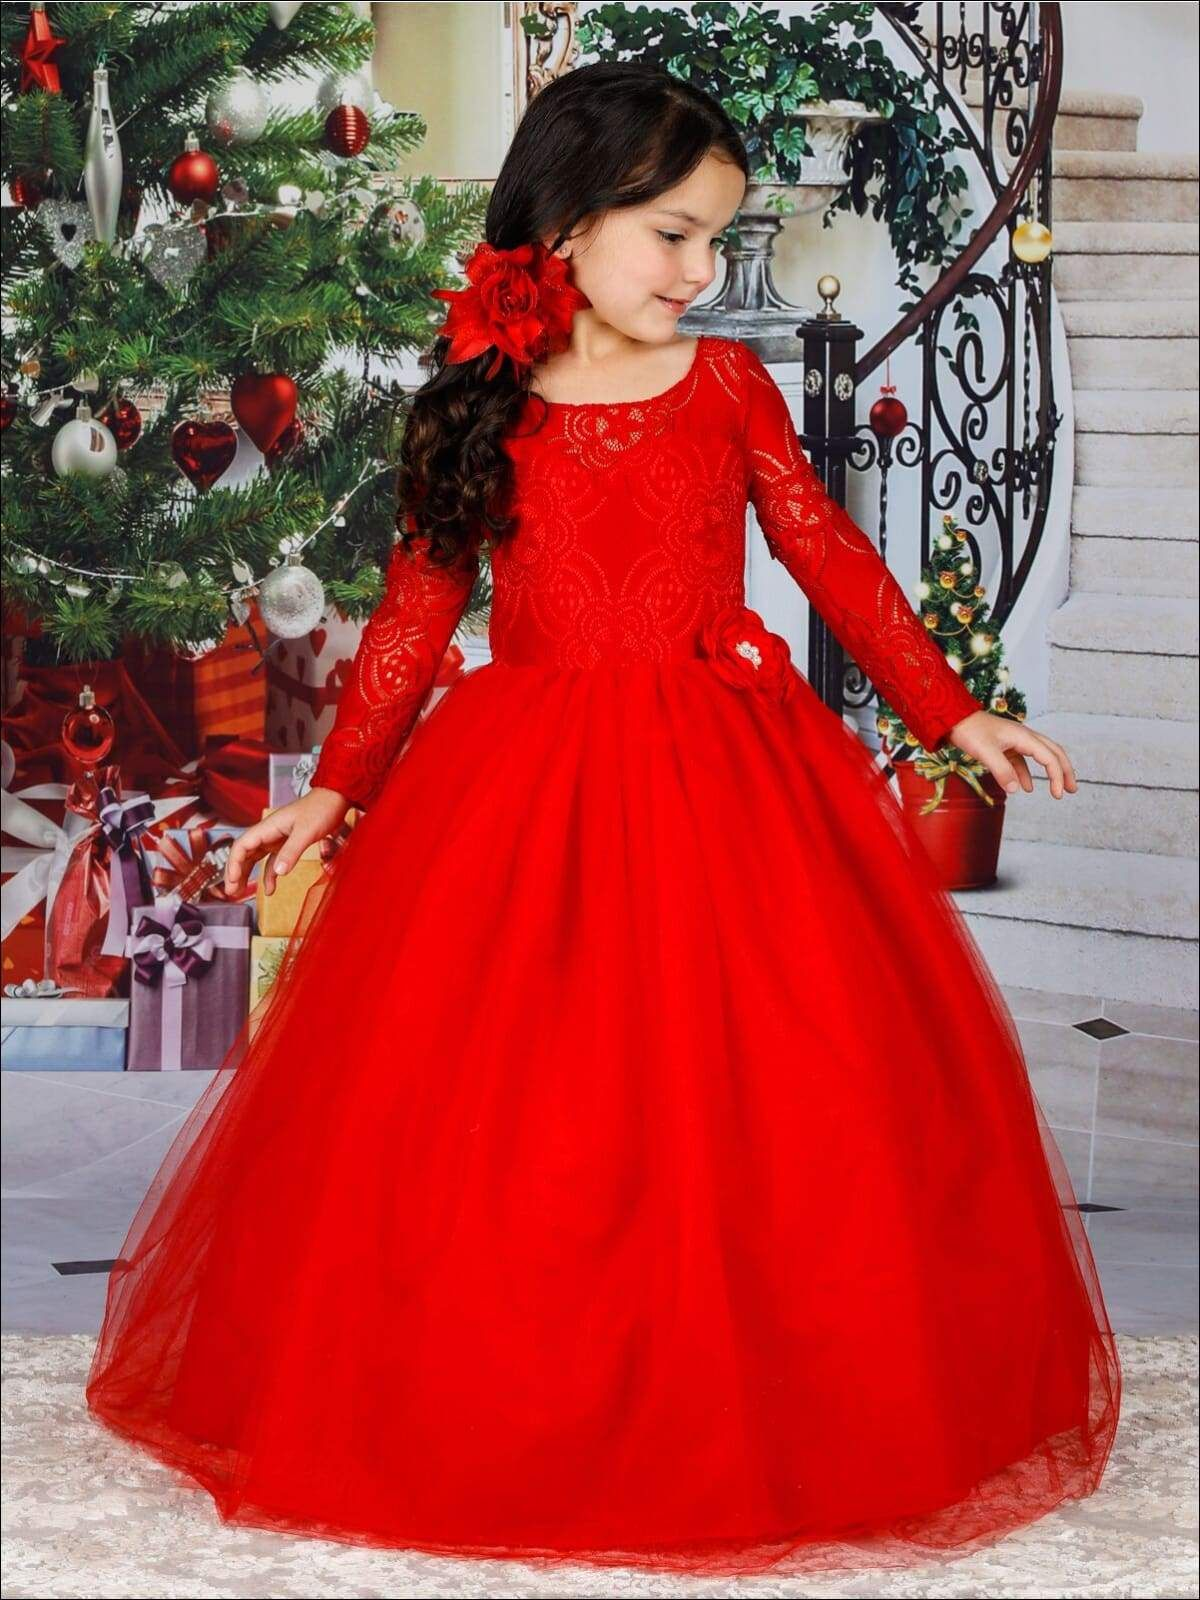 Girls Long Lace Sleeve Maxi Dress With Flower Clip Red Flower Girl Dresses Red Christmas Dress Girls Christmas Dresses [ 1600 x 1200 Pixel ]